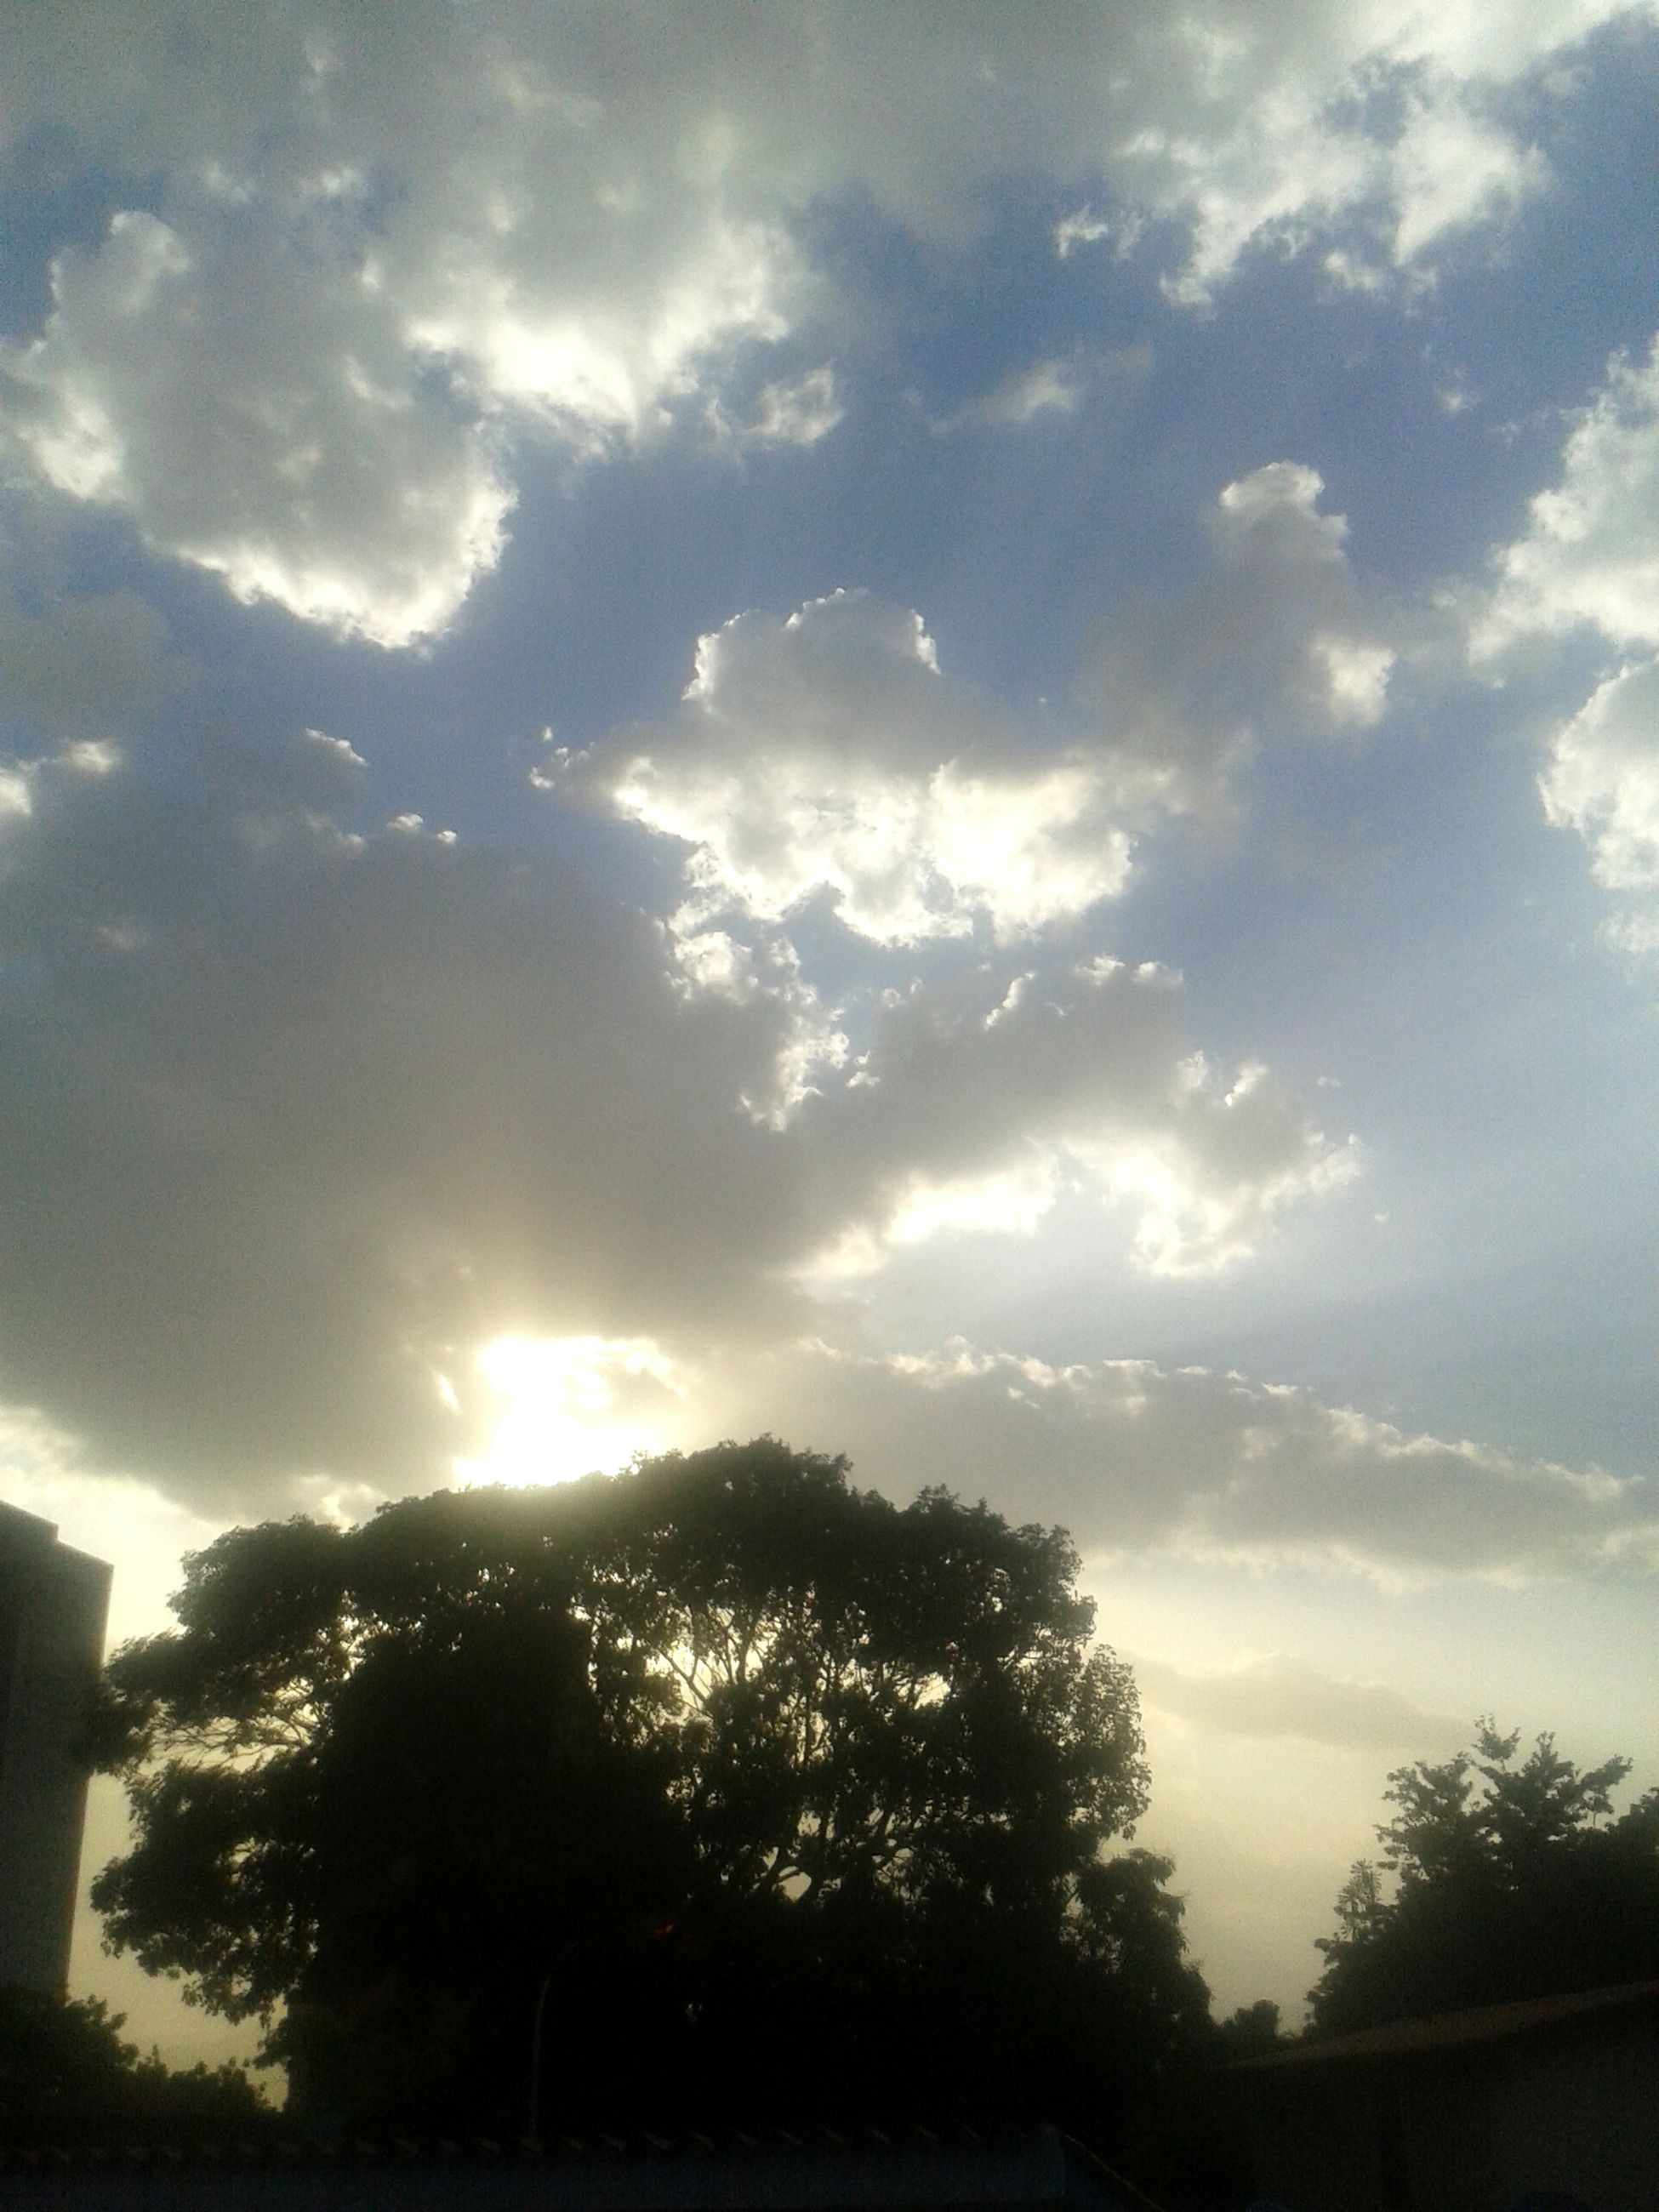 tree, sky, silhouette, cloud - sky, low angle view, beauty in nature, tranquility, nature, cloudy, scenics, cloud, tranquil scene, growth, sunlight, sunbeam, sun, branch, outdoors, sunset, no people